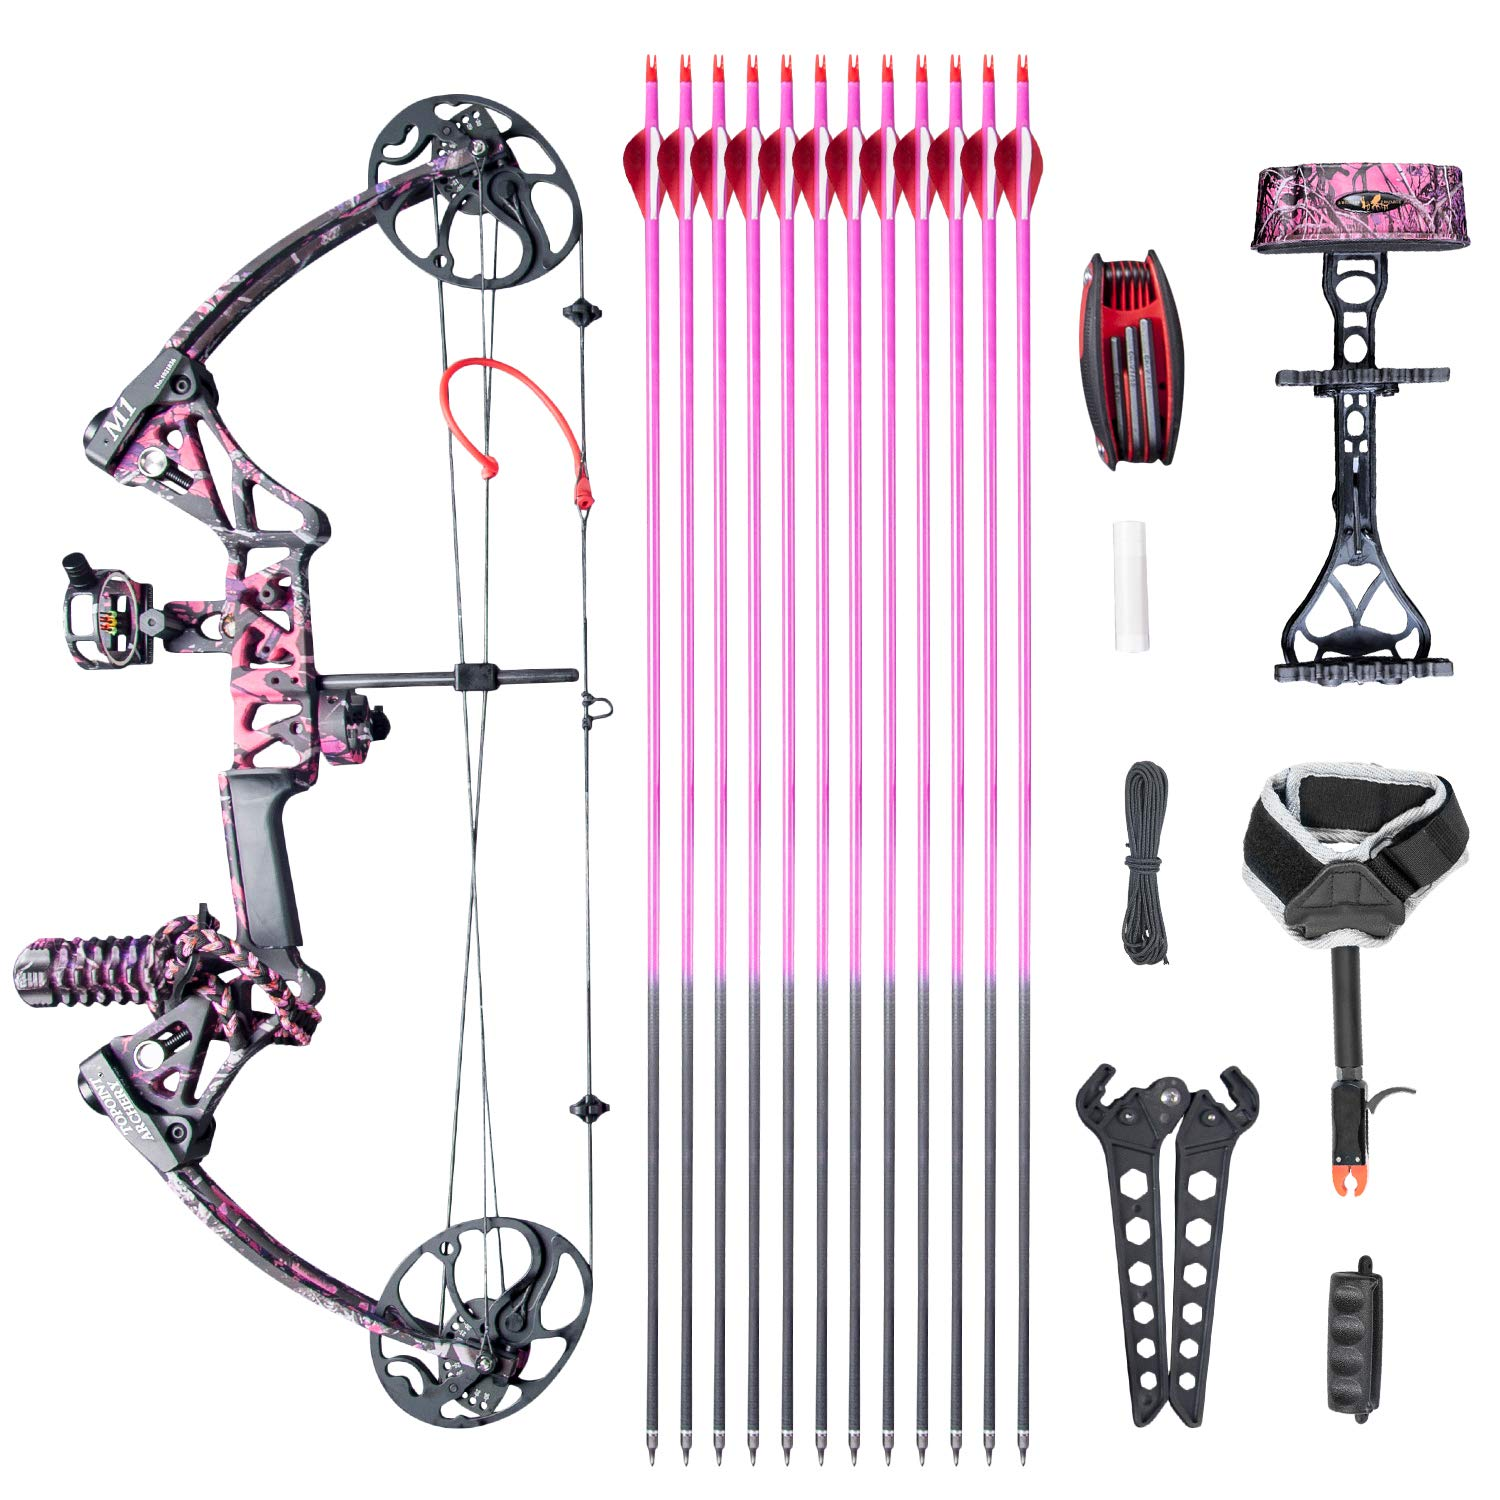 """95eadf56a Compound Bow Ship from USA Warehouse,Topoint Archery for Women, Package  M1,19""""-30"""" Draw Length,10-50Lbs Draw Weight,Limbs Made in USA Hunting Bow  for Girls ..."""